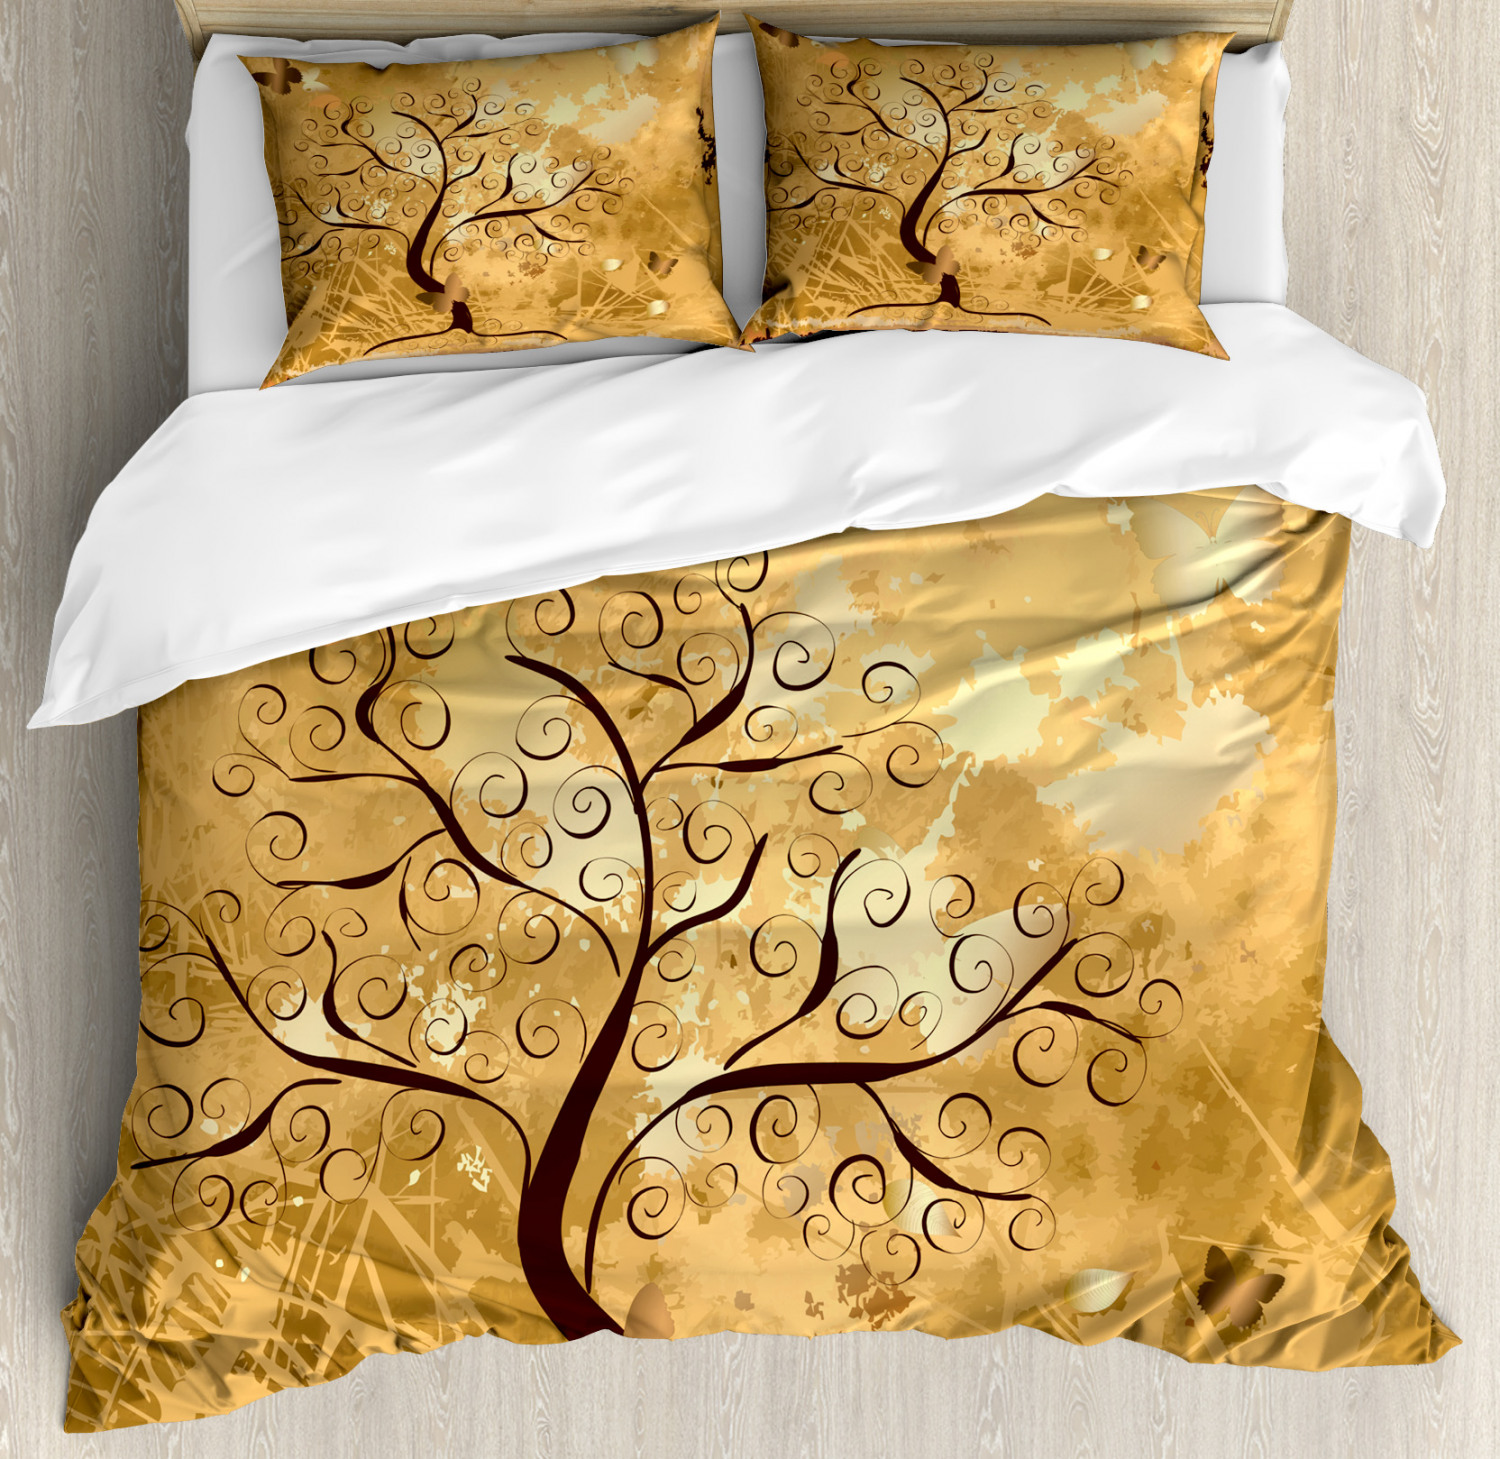 Tree Duvet Cover Set with Pillow Shams Branches and Butterfly Print